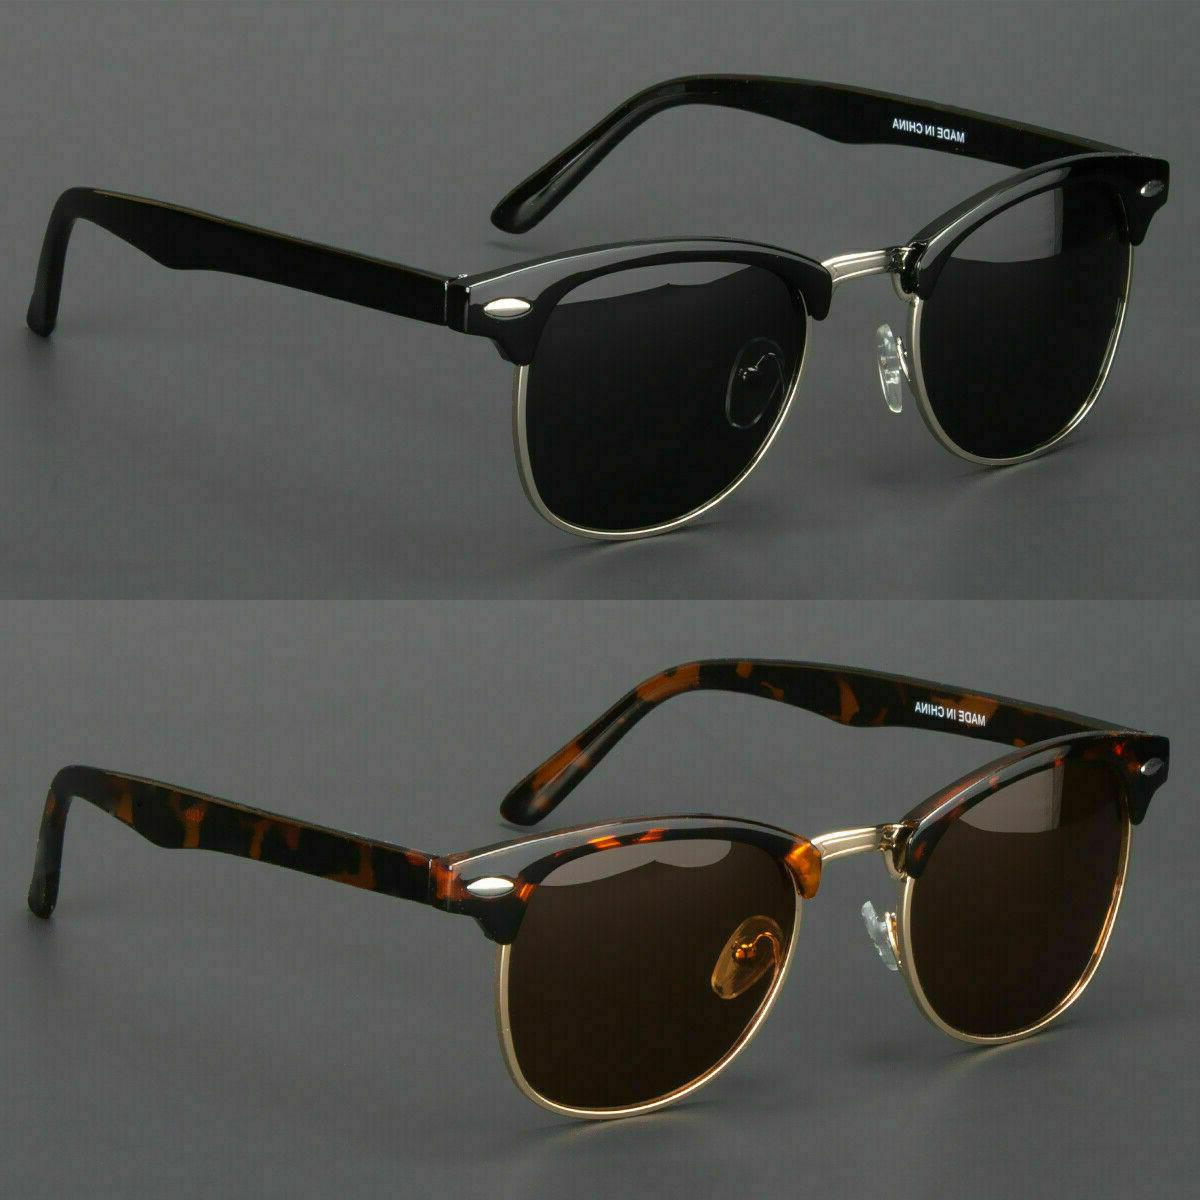 New Polarized Retro Sunglasses Mens Womens Vintage Designer